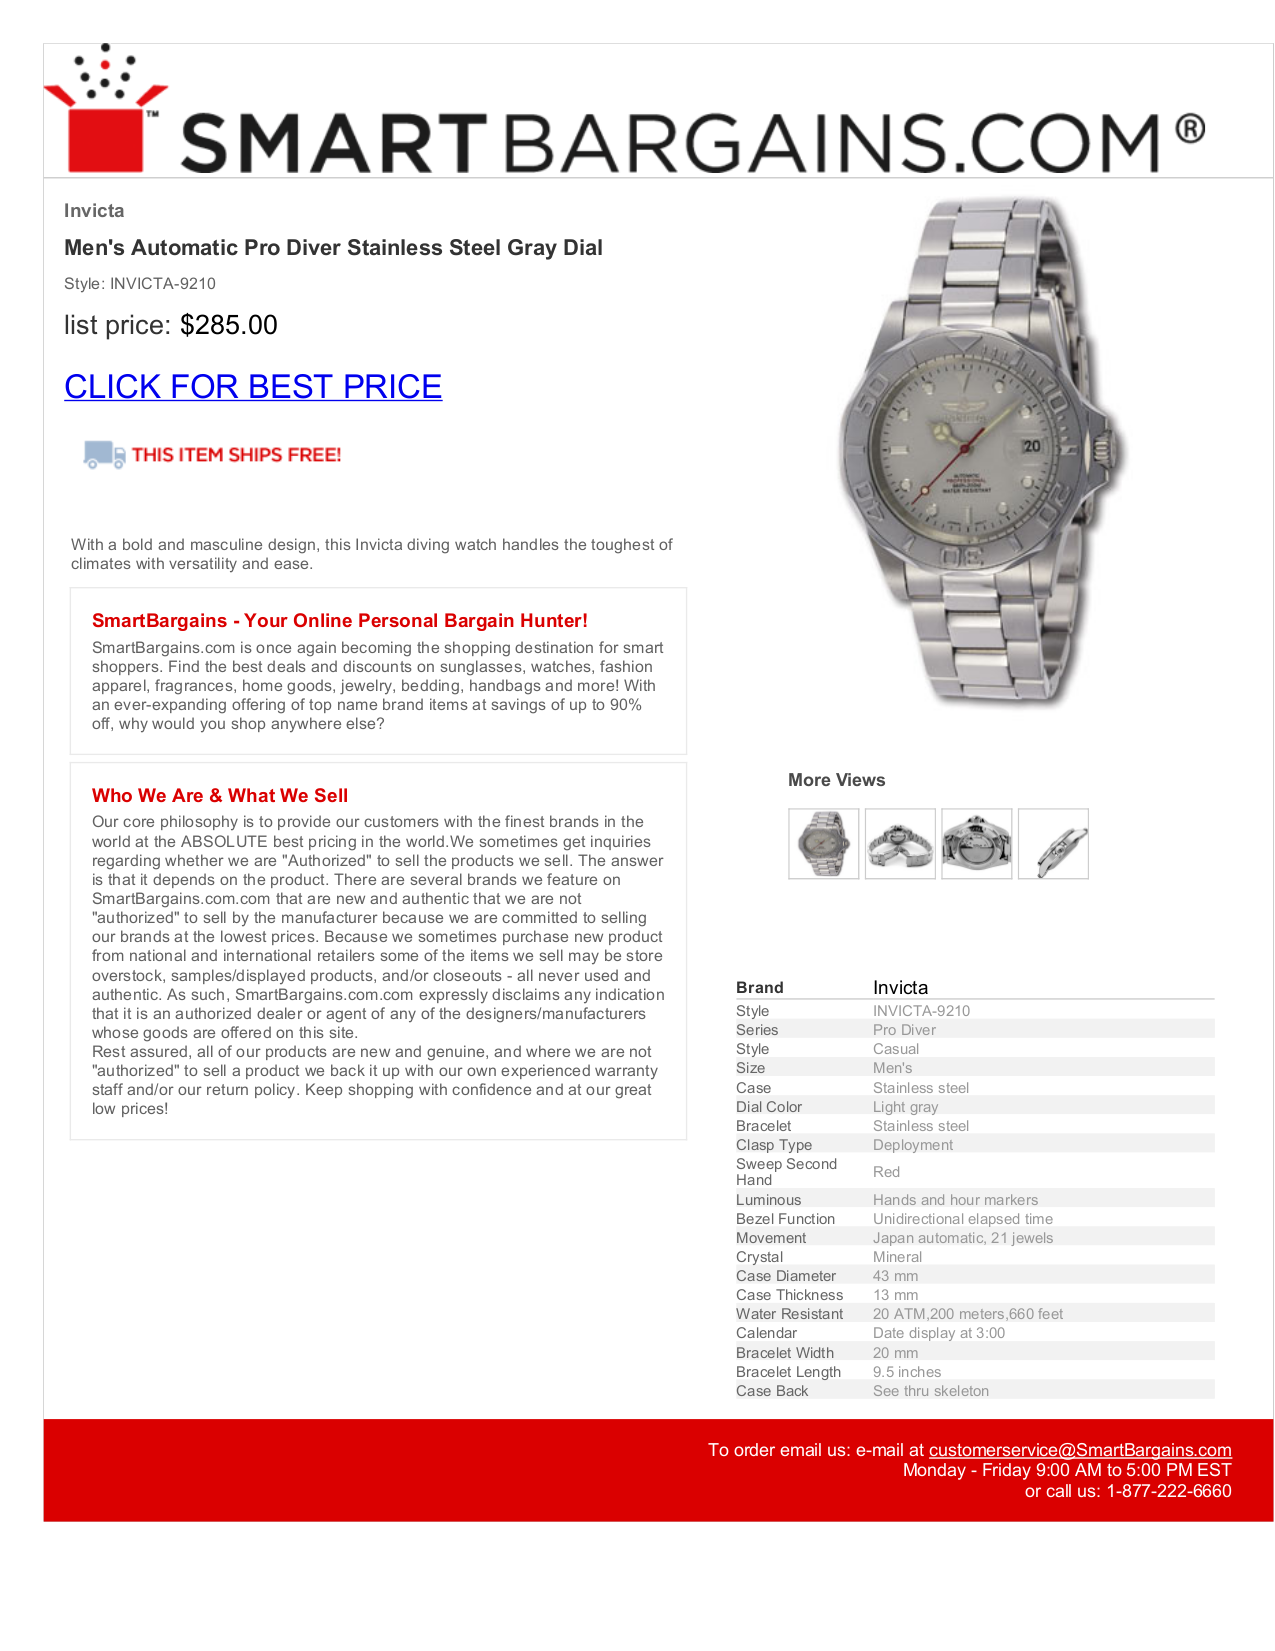 Download Free Pdf For Invicta Pro Diver 9210 Watch Manual Schematic 43